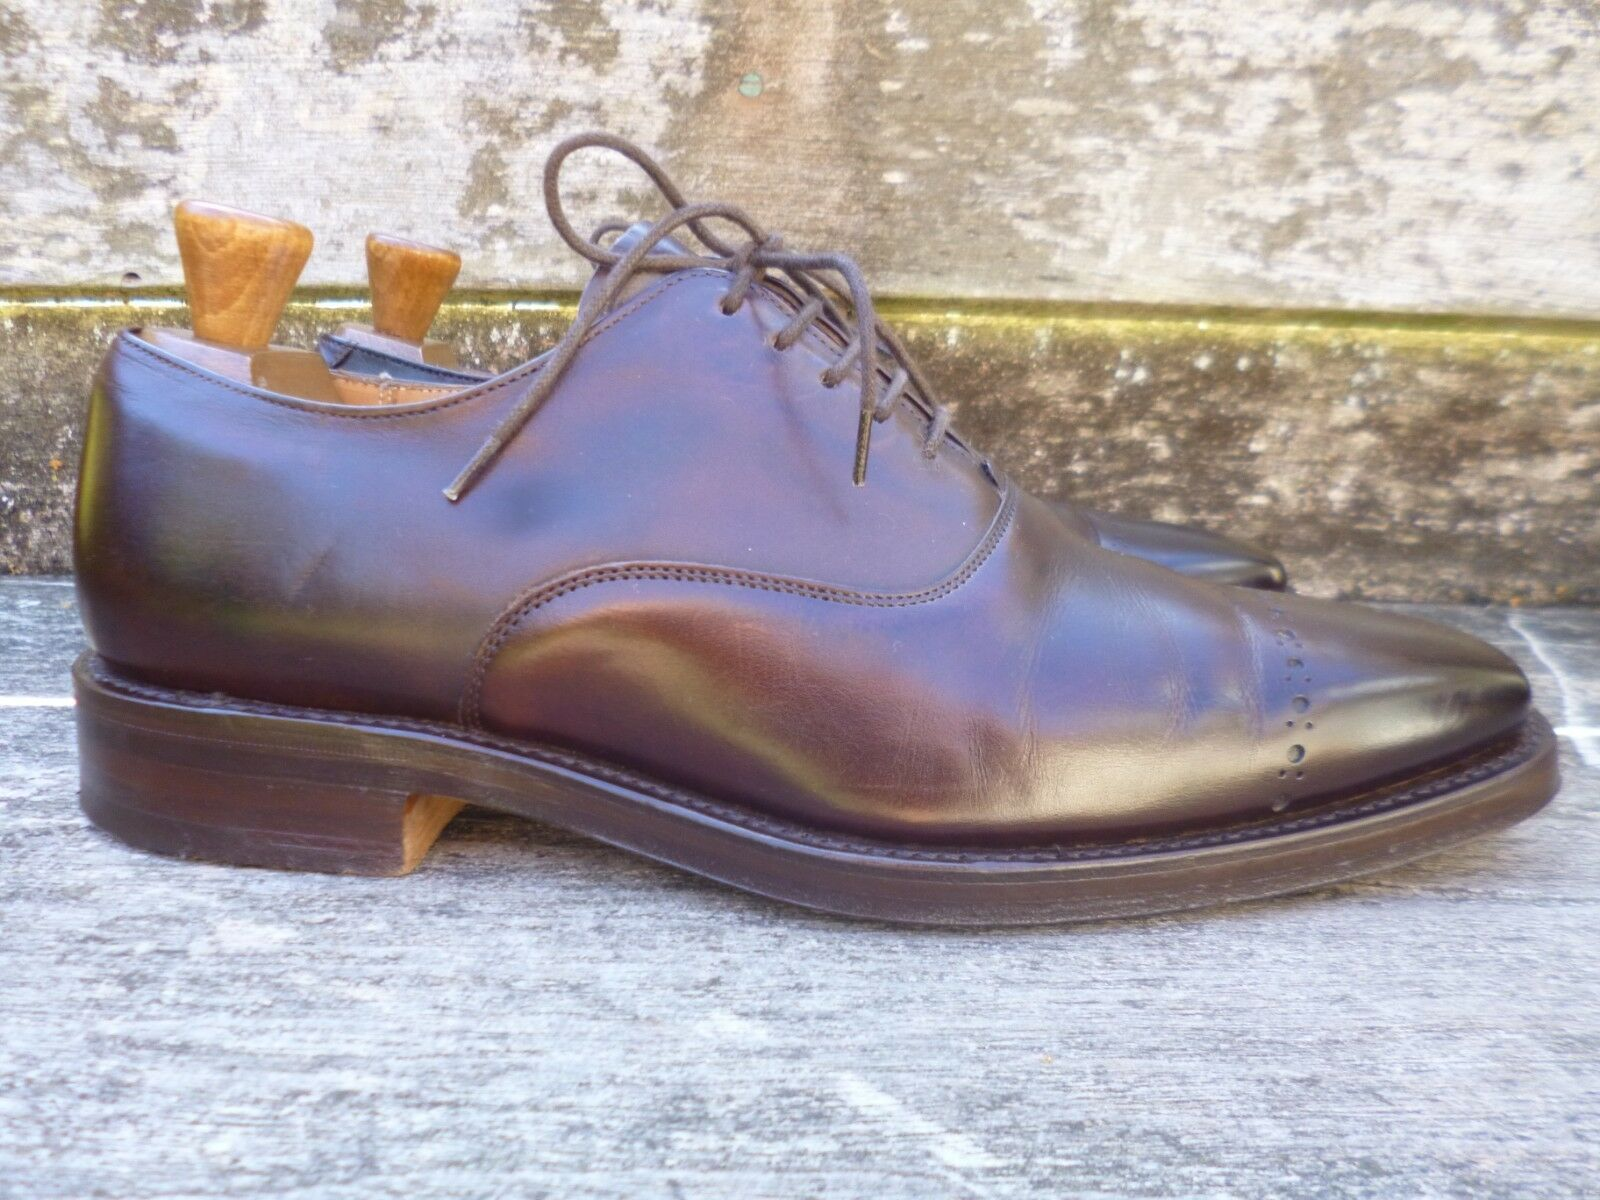 CHEANEY / CHURCH BROGUES – BROWN – UK 8.5 – EXCELLENT PERRY - EXCELLENT – CONDITION 151277